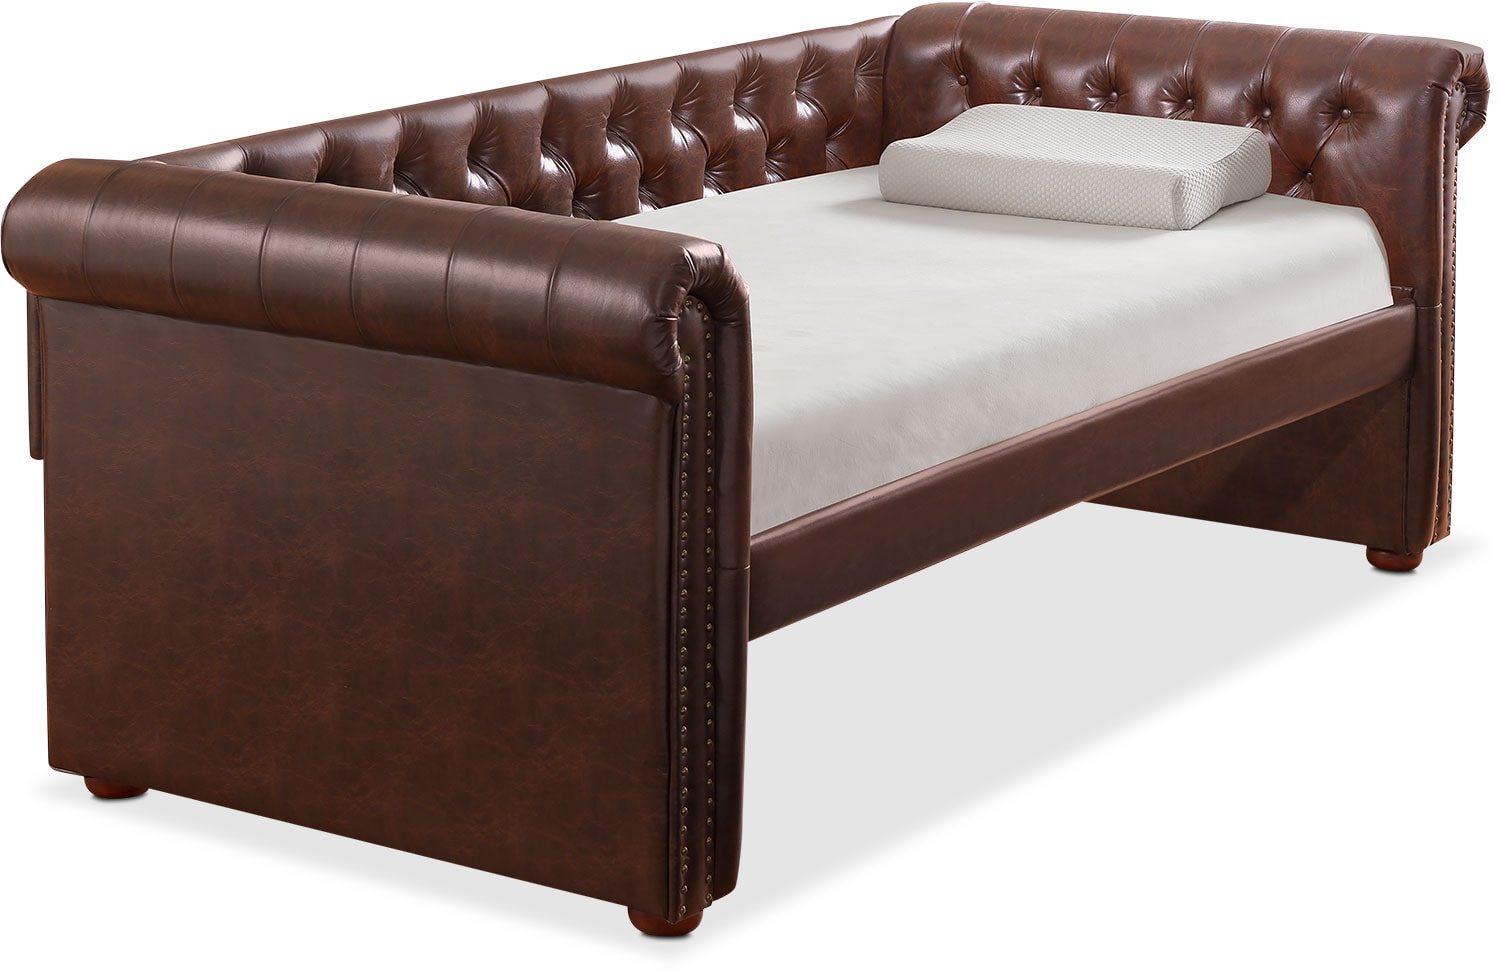 Shelton Twin Upholstered Daybed   Brown